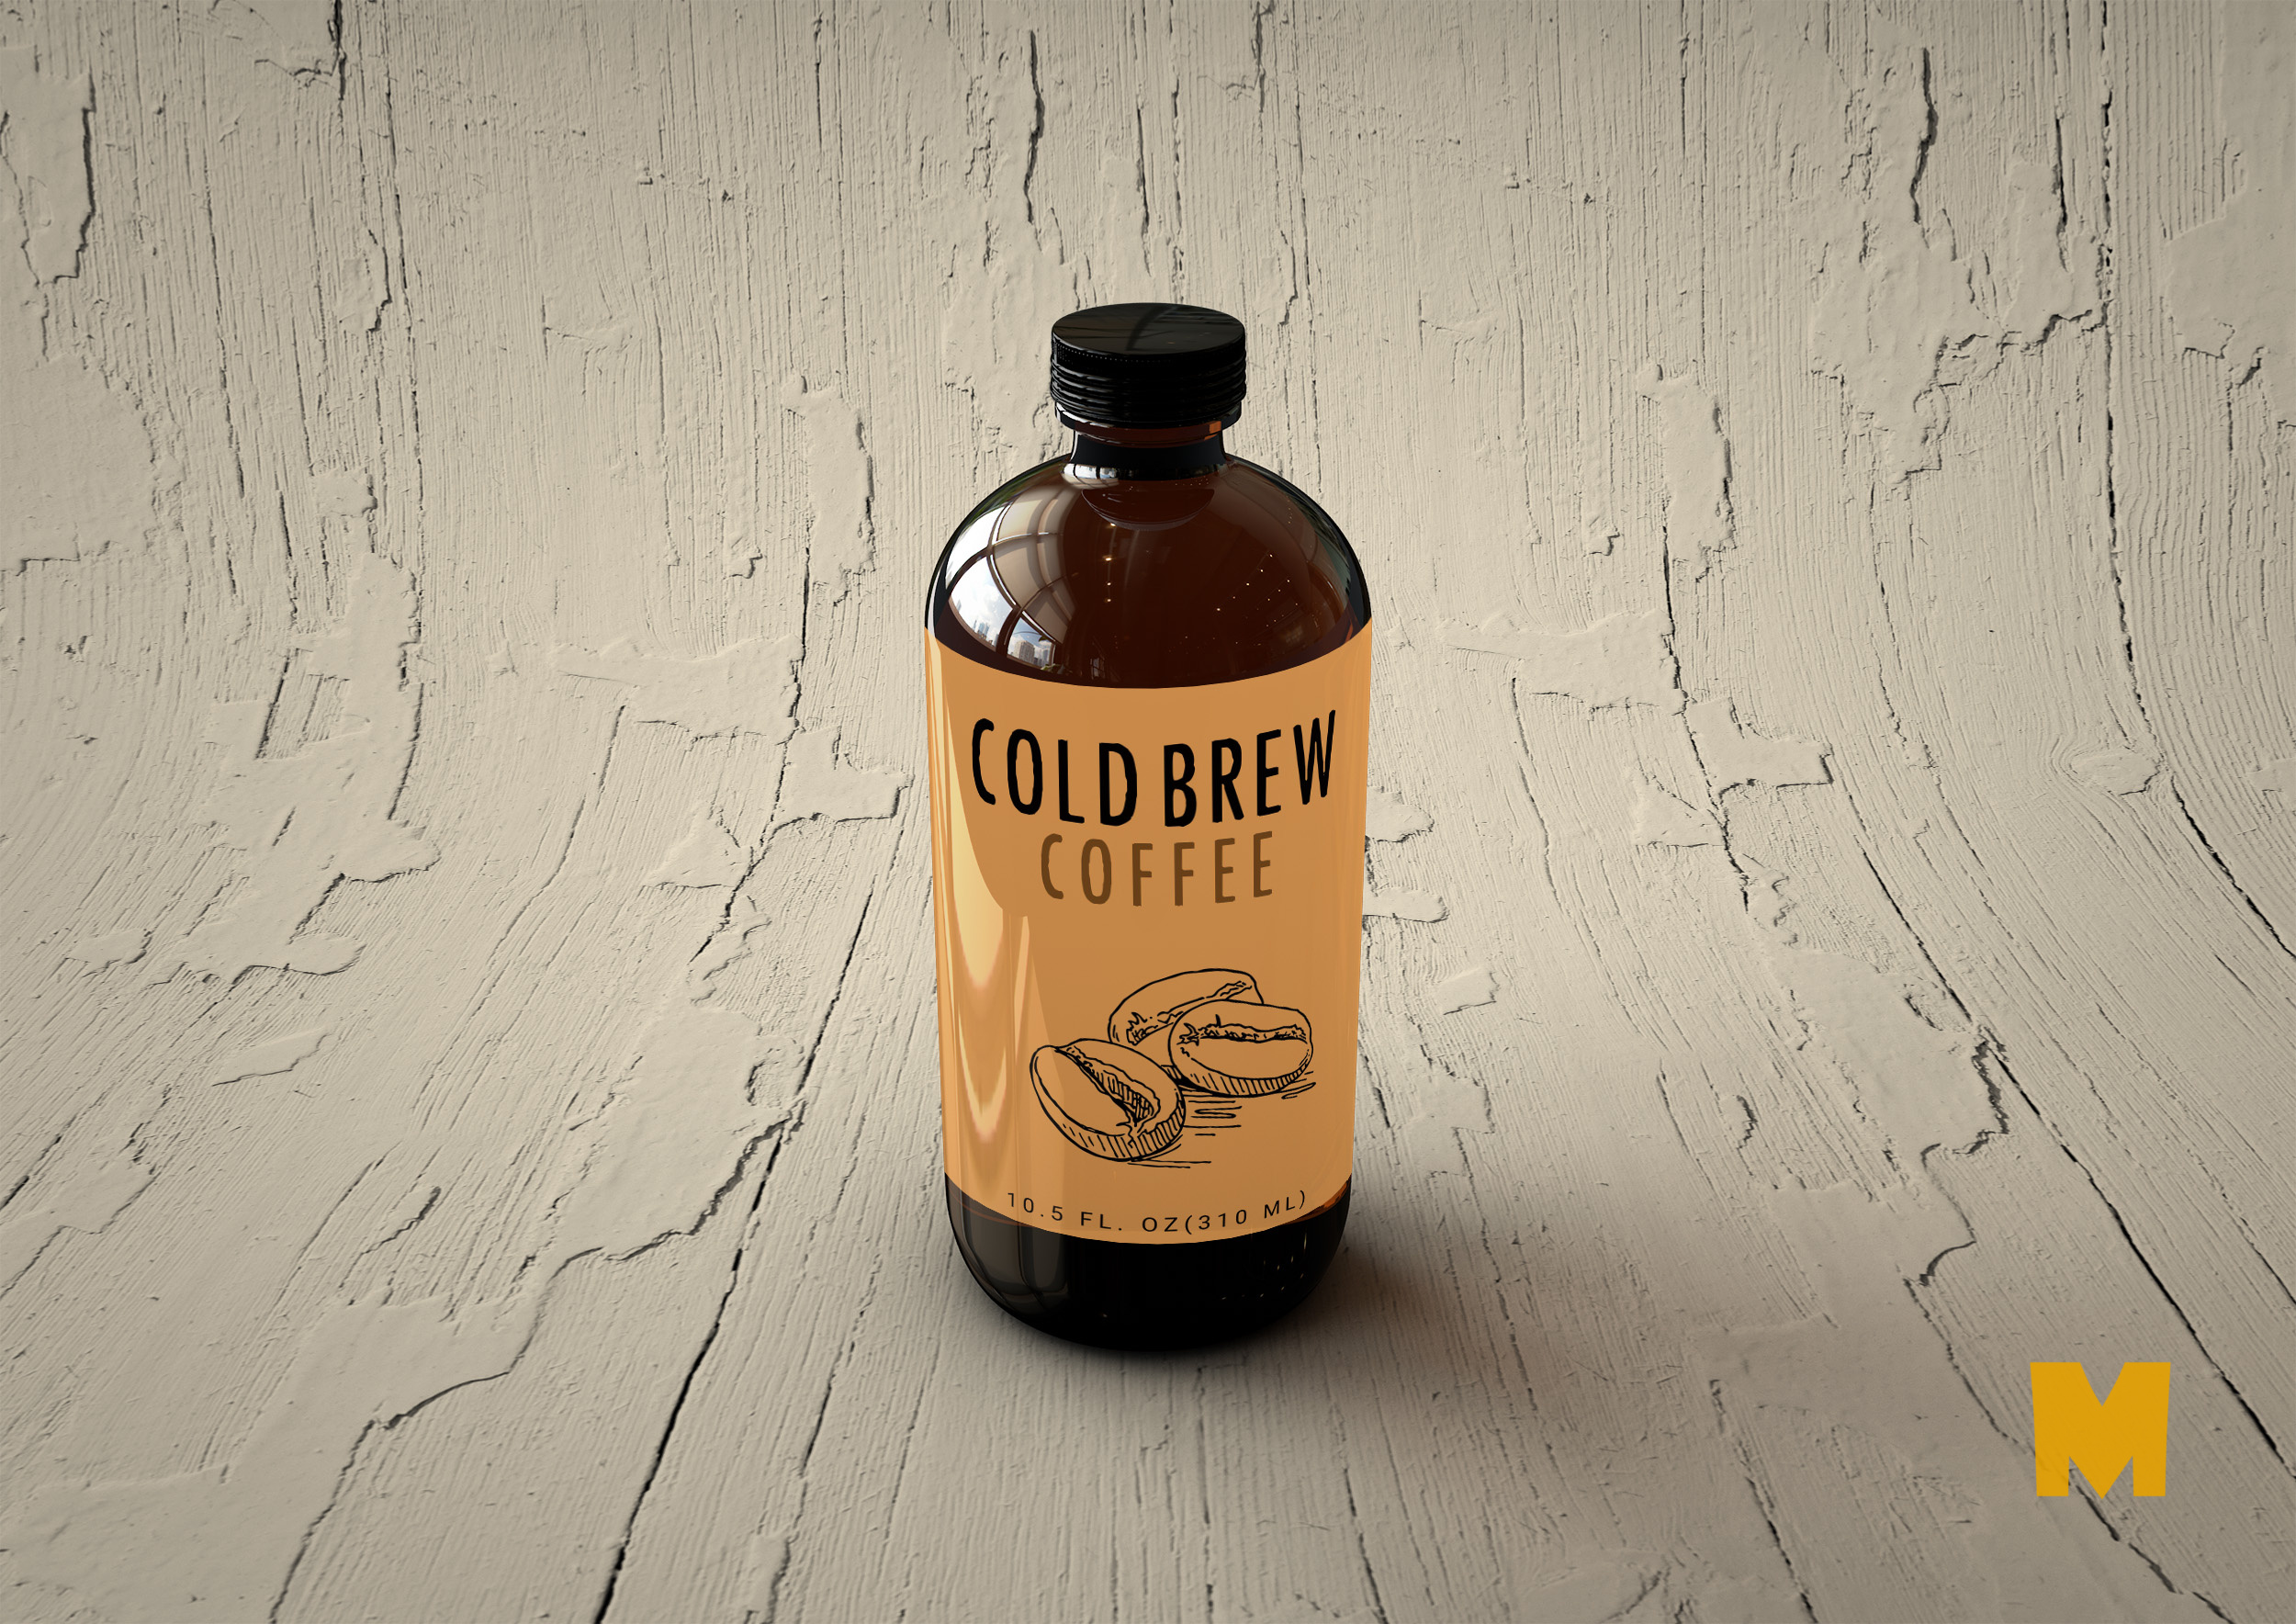 Free Cold Brew Coffee Bottle Label MockUp